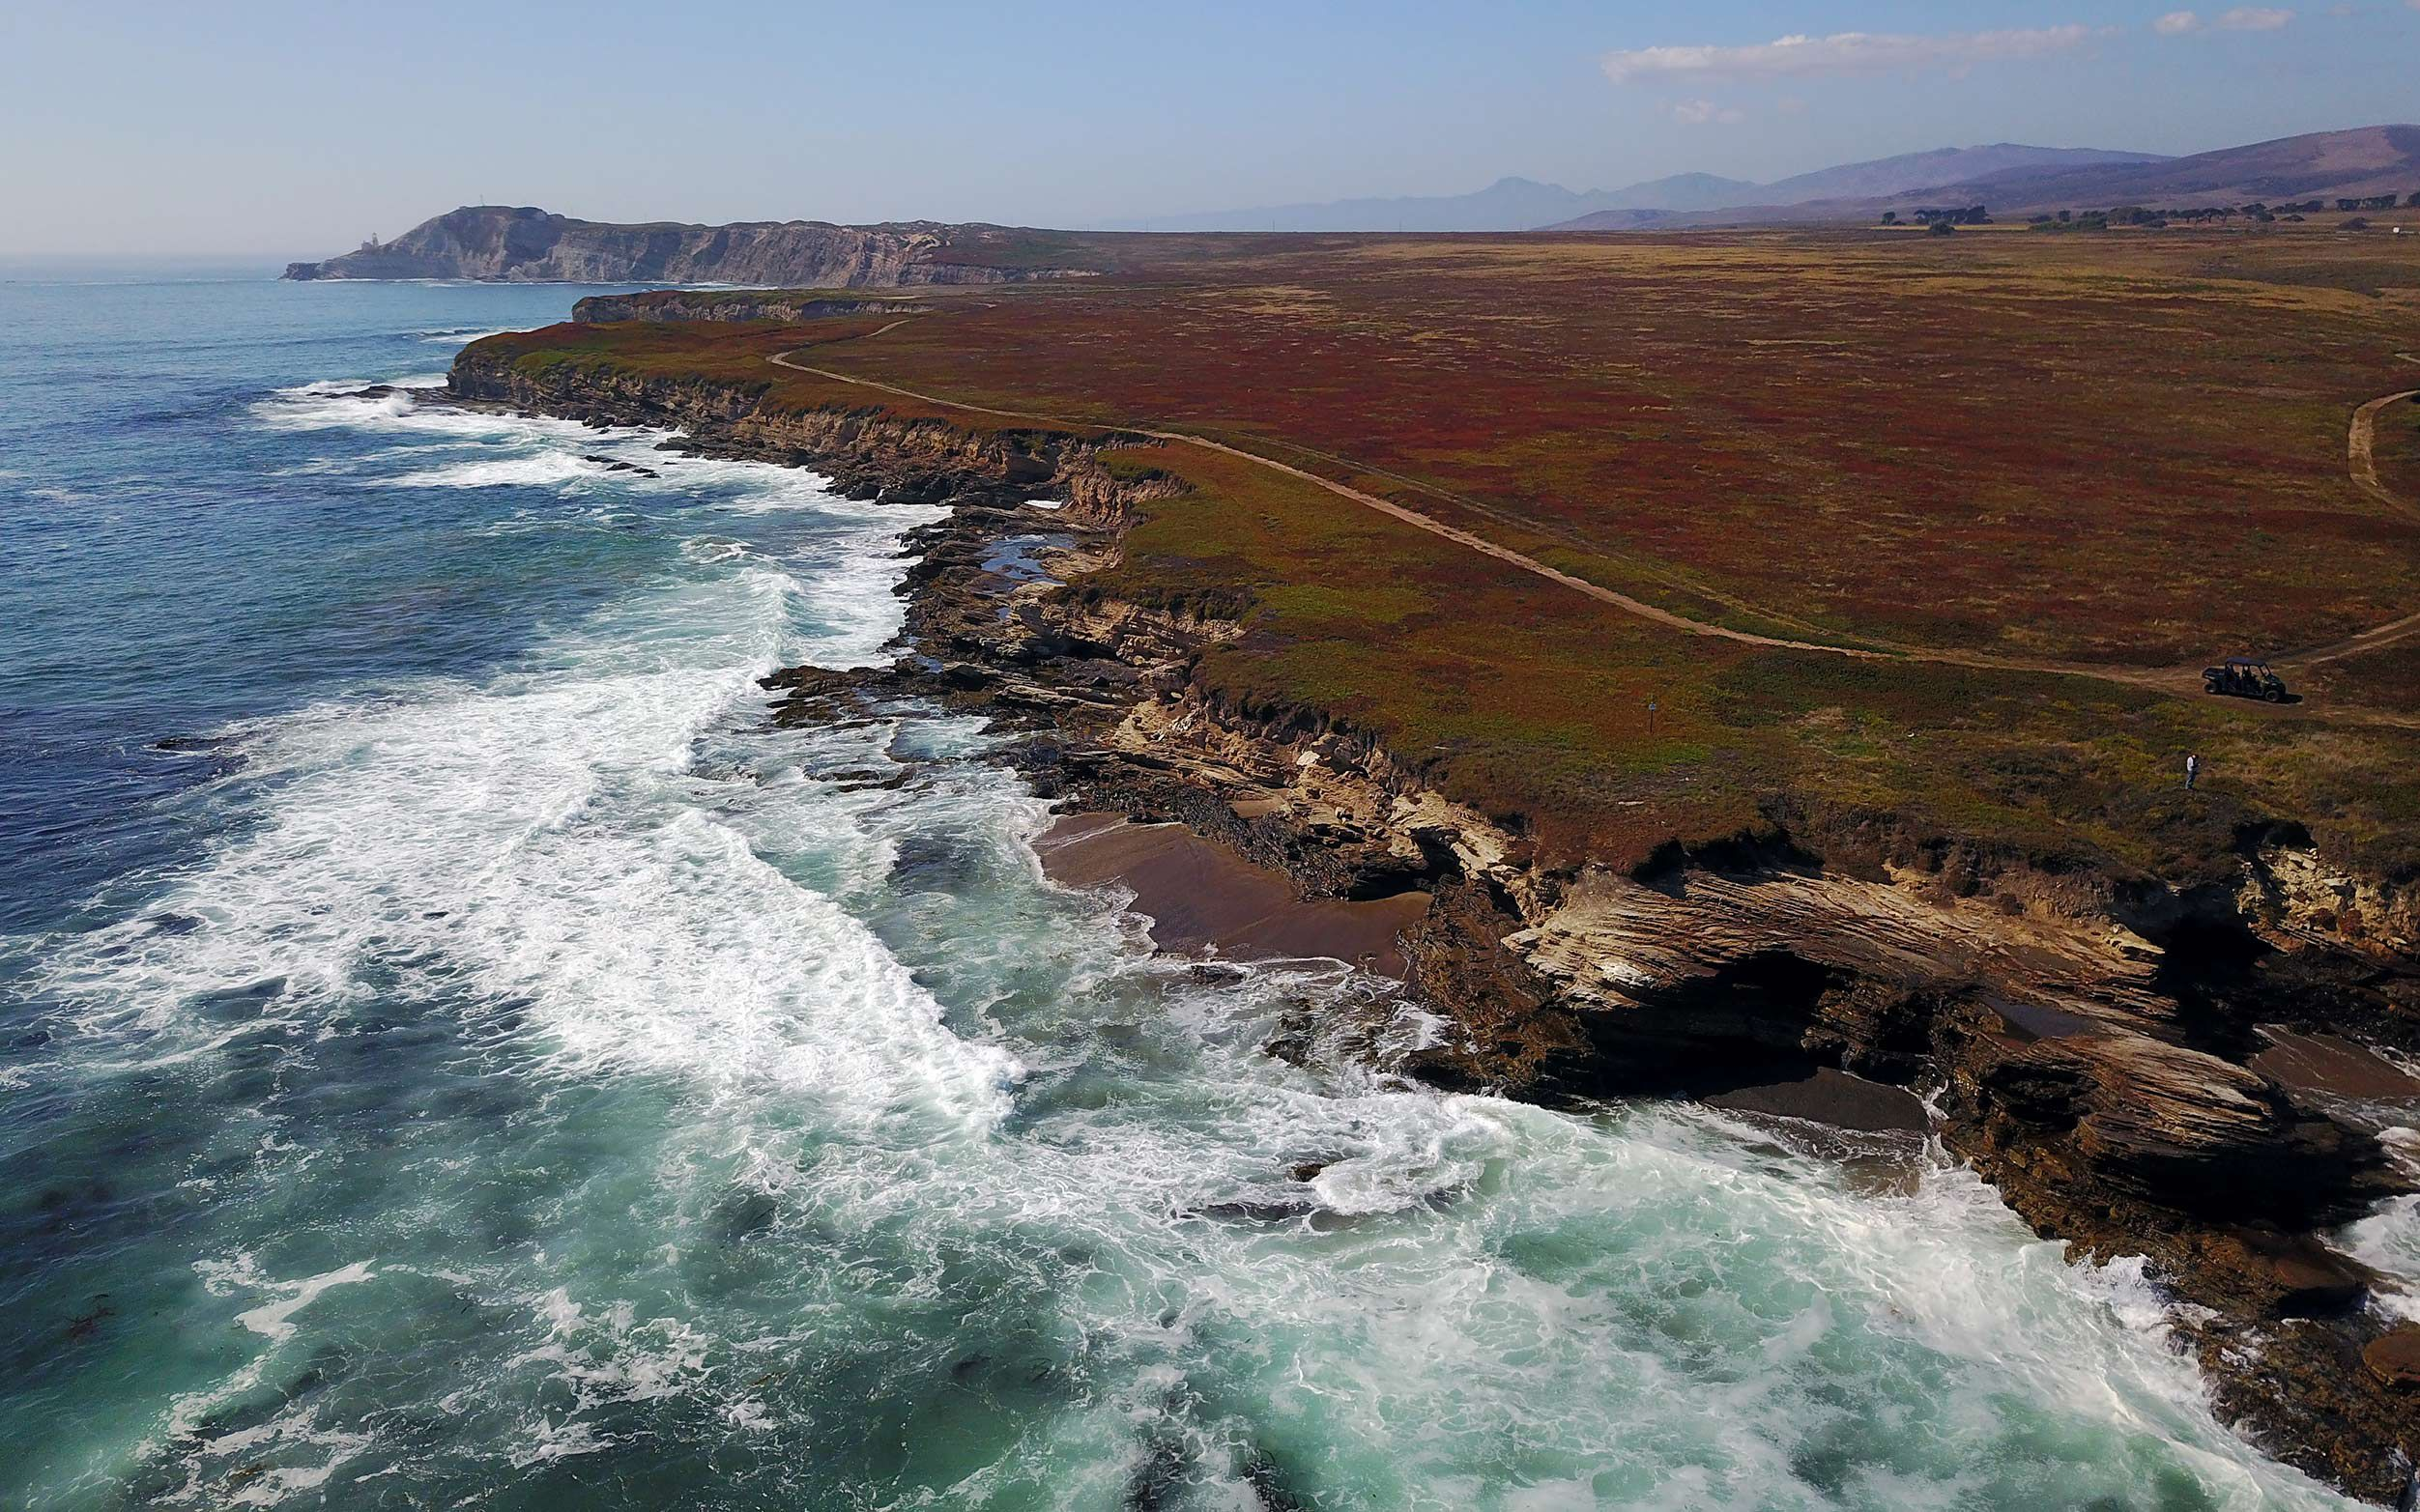 Aerial view of the coastline of Dangermond preserve with turquoise waves breaking on a rocky shore.